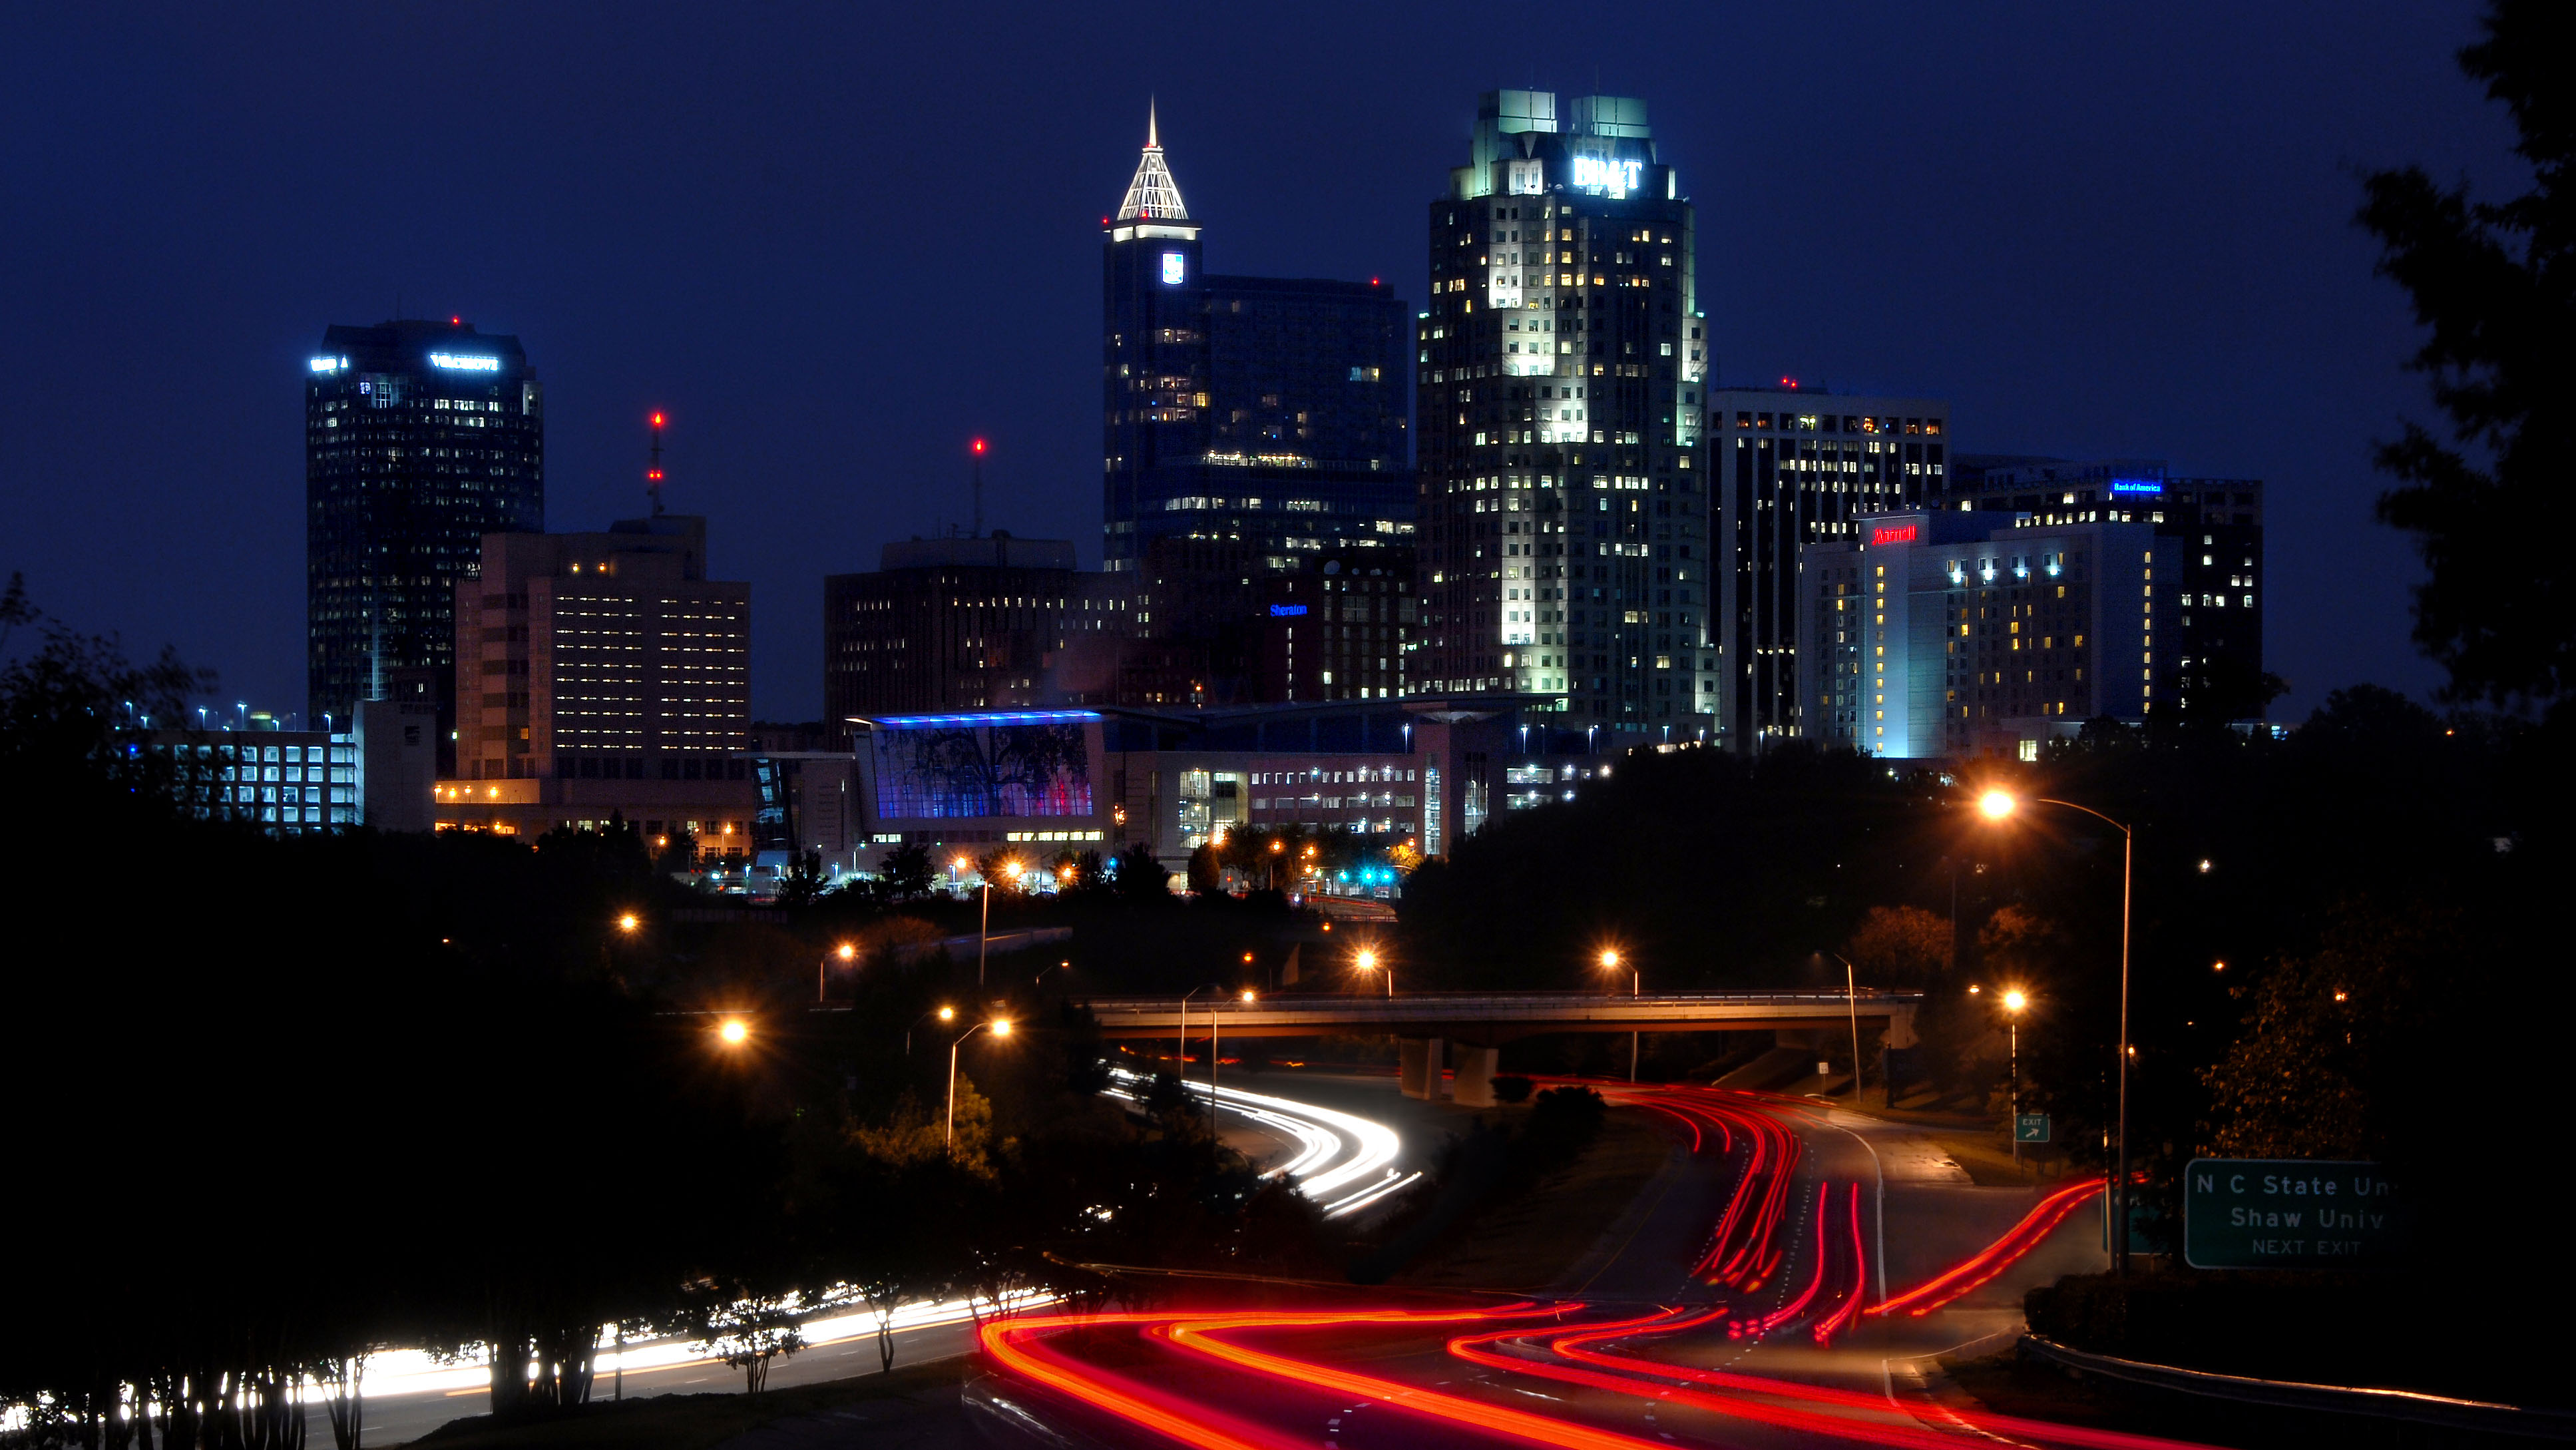 City of Raleigh skyline in the early evening. PHOTO BY ROGER WINSTEAD